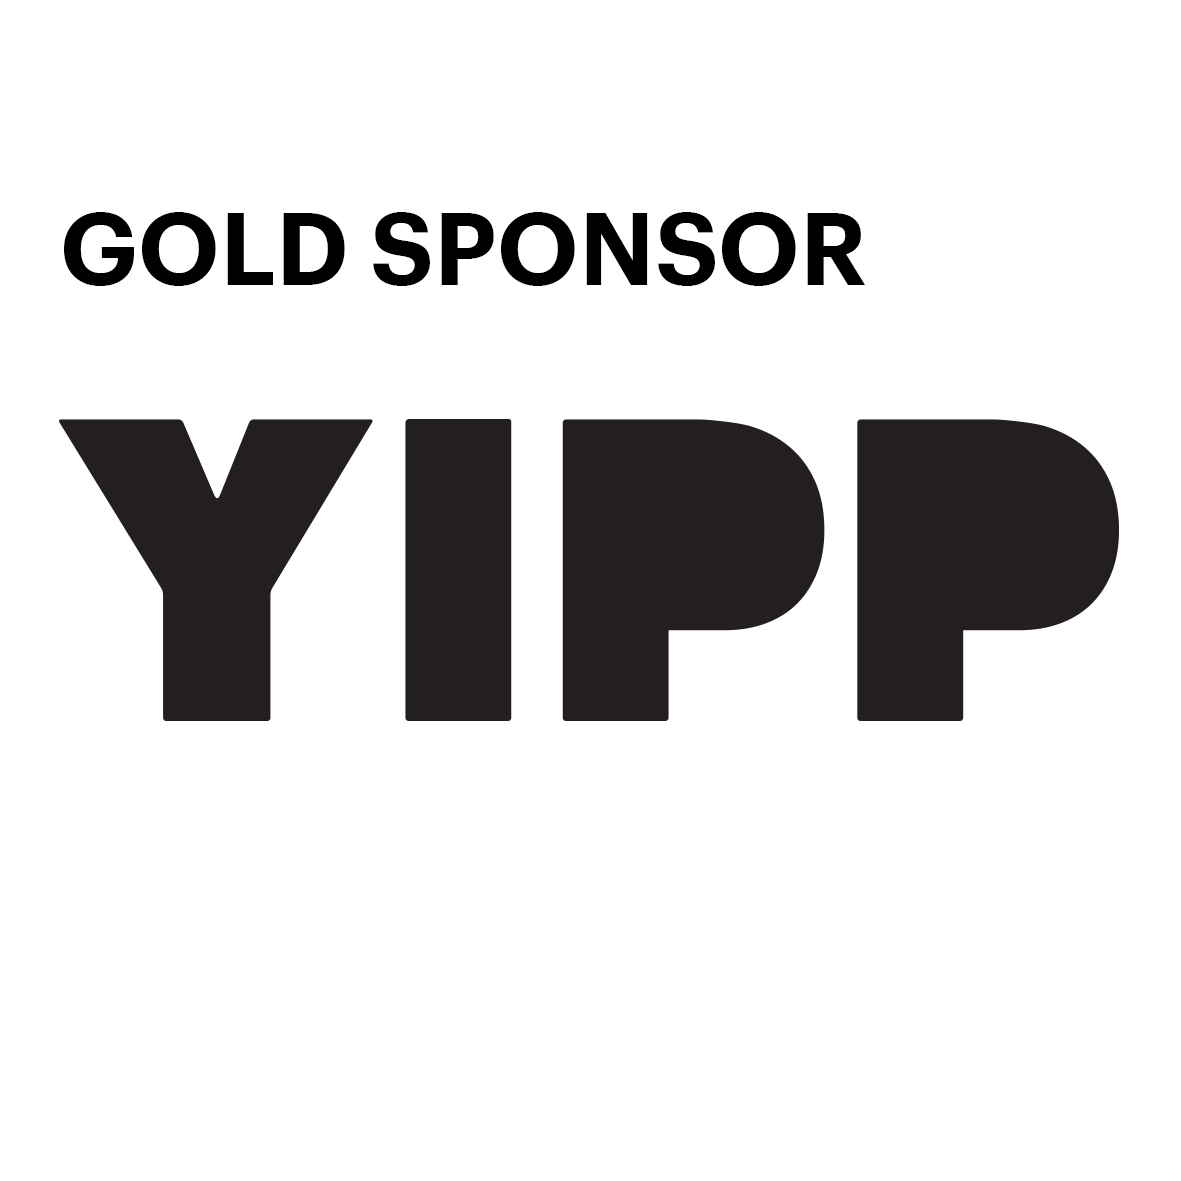 Yipp is a Gold Sponsor of the Ecsite Conference